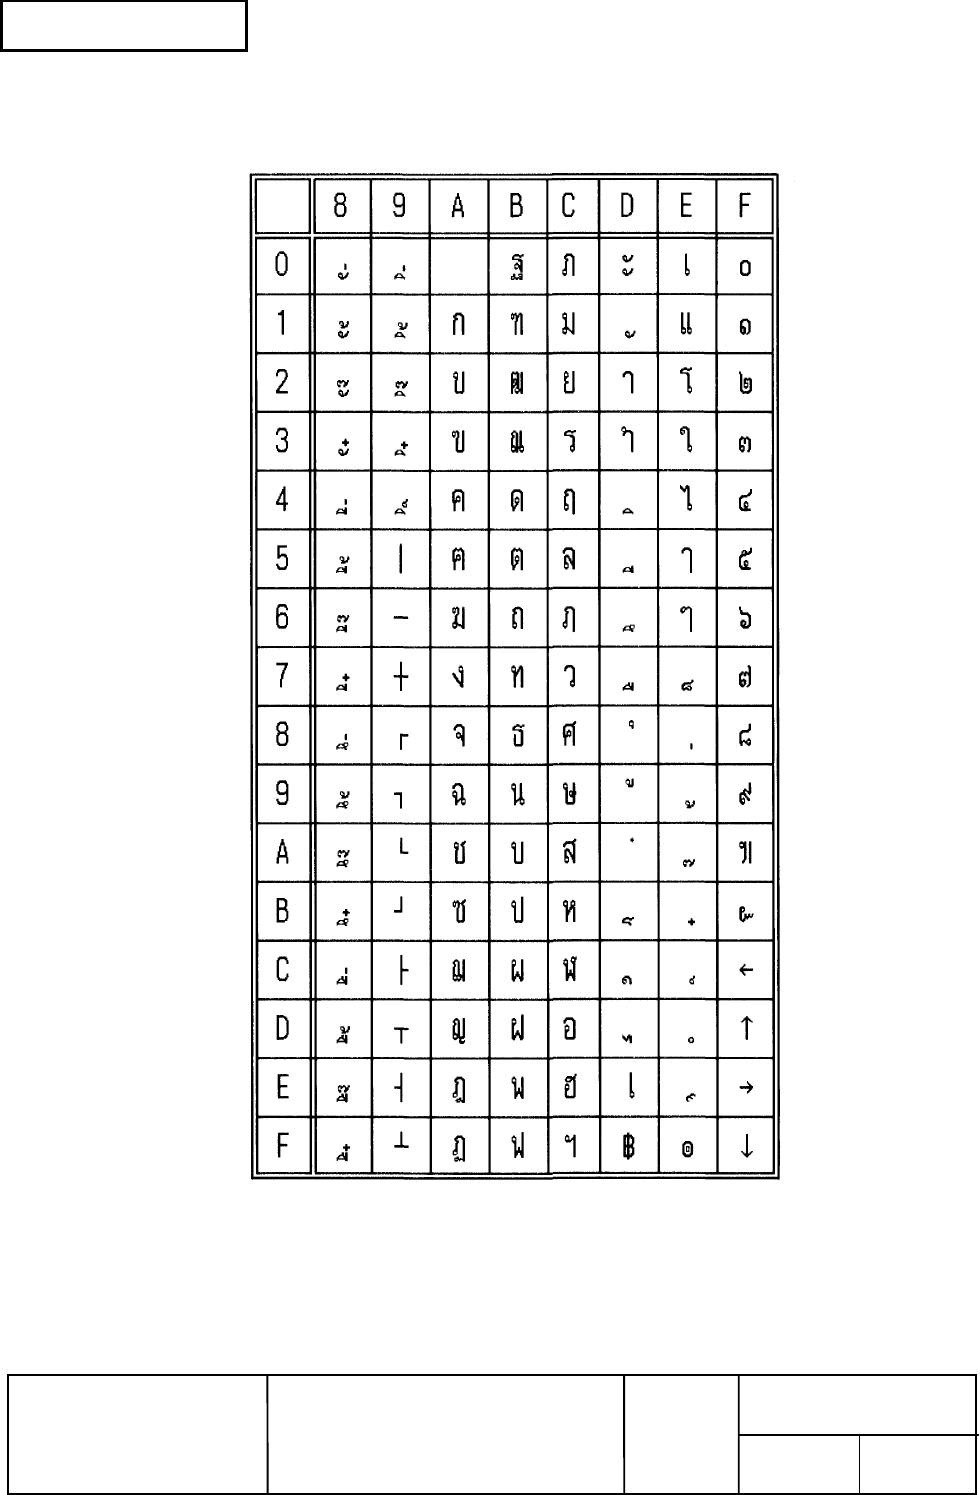 Epson TM-T88III Series 3.2.16 Page 25 (Thai character code 17)